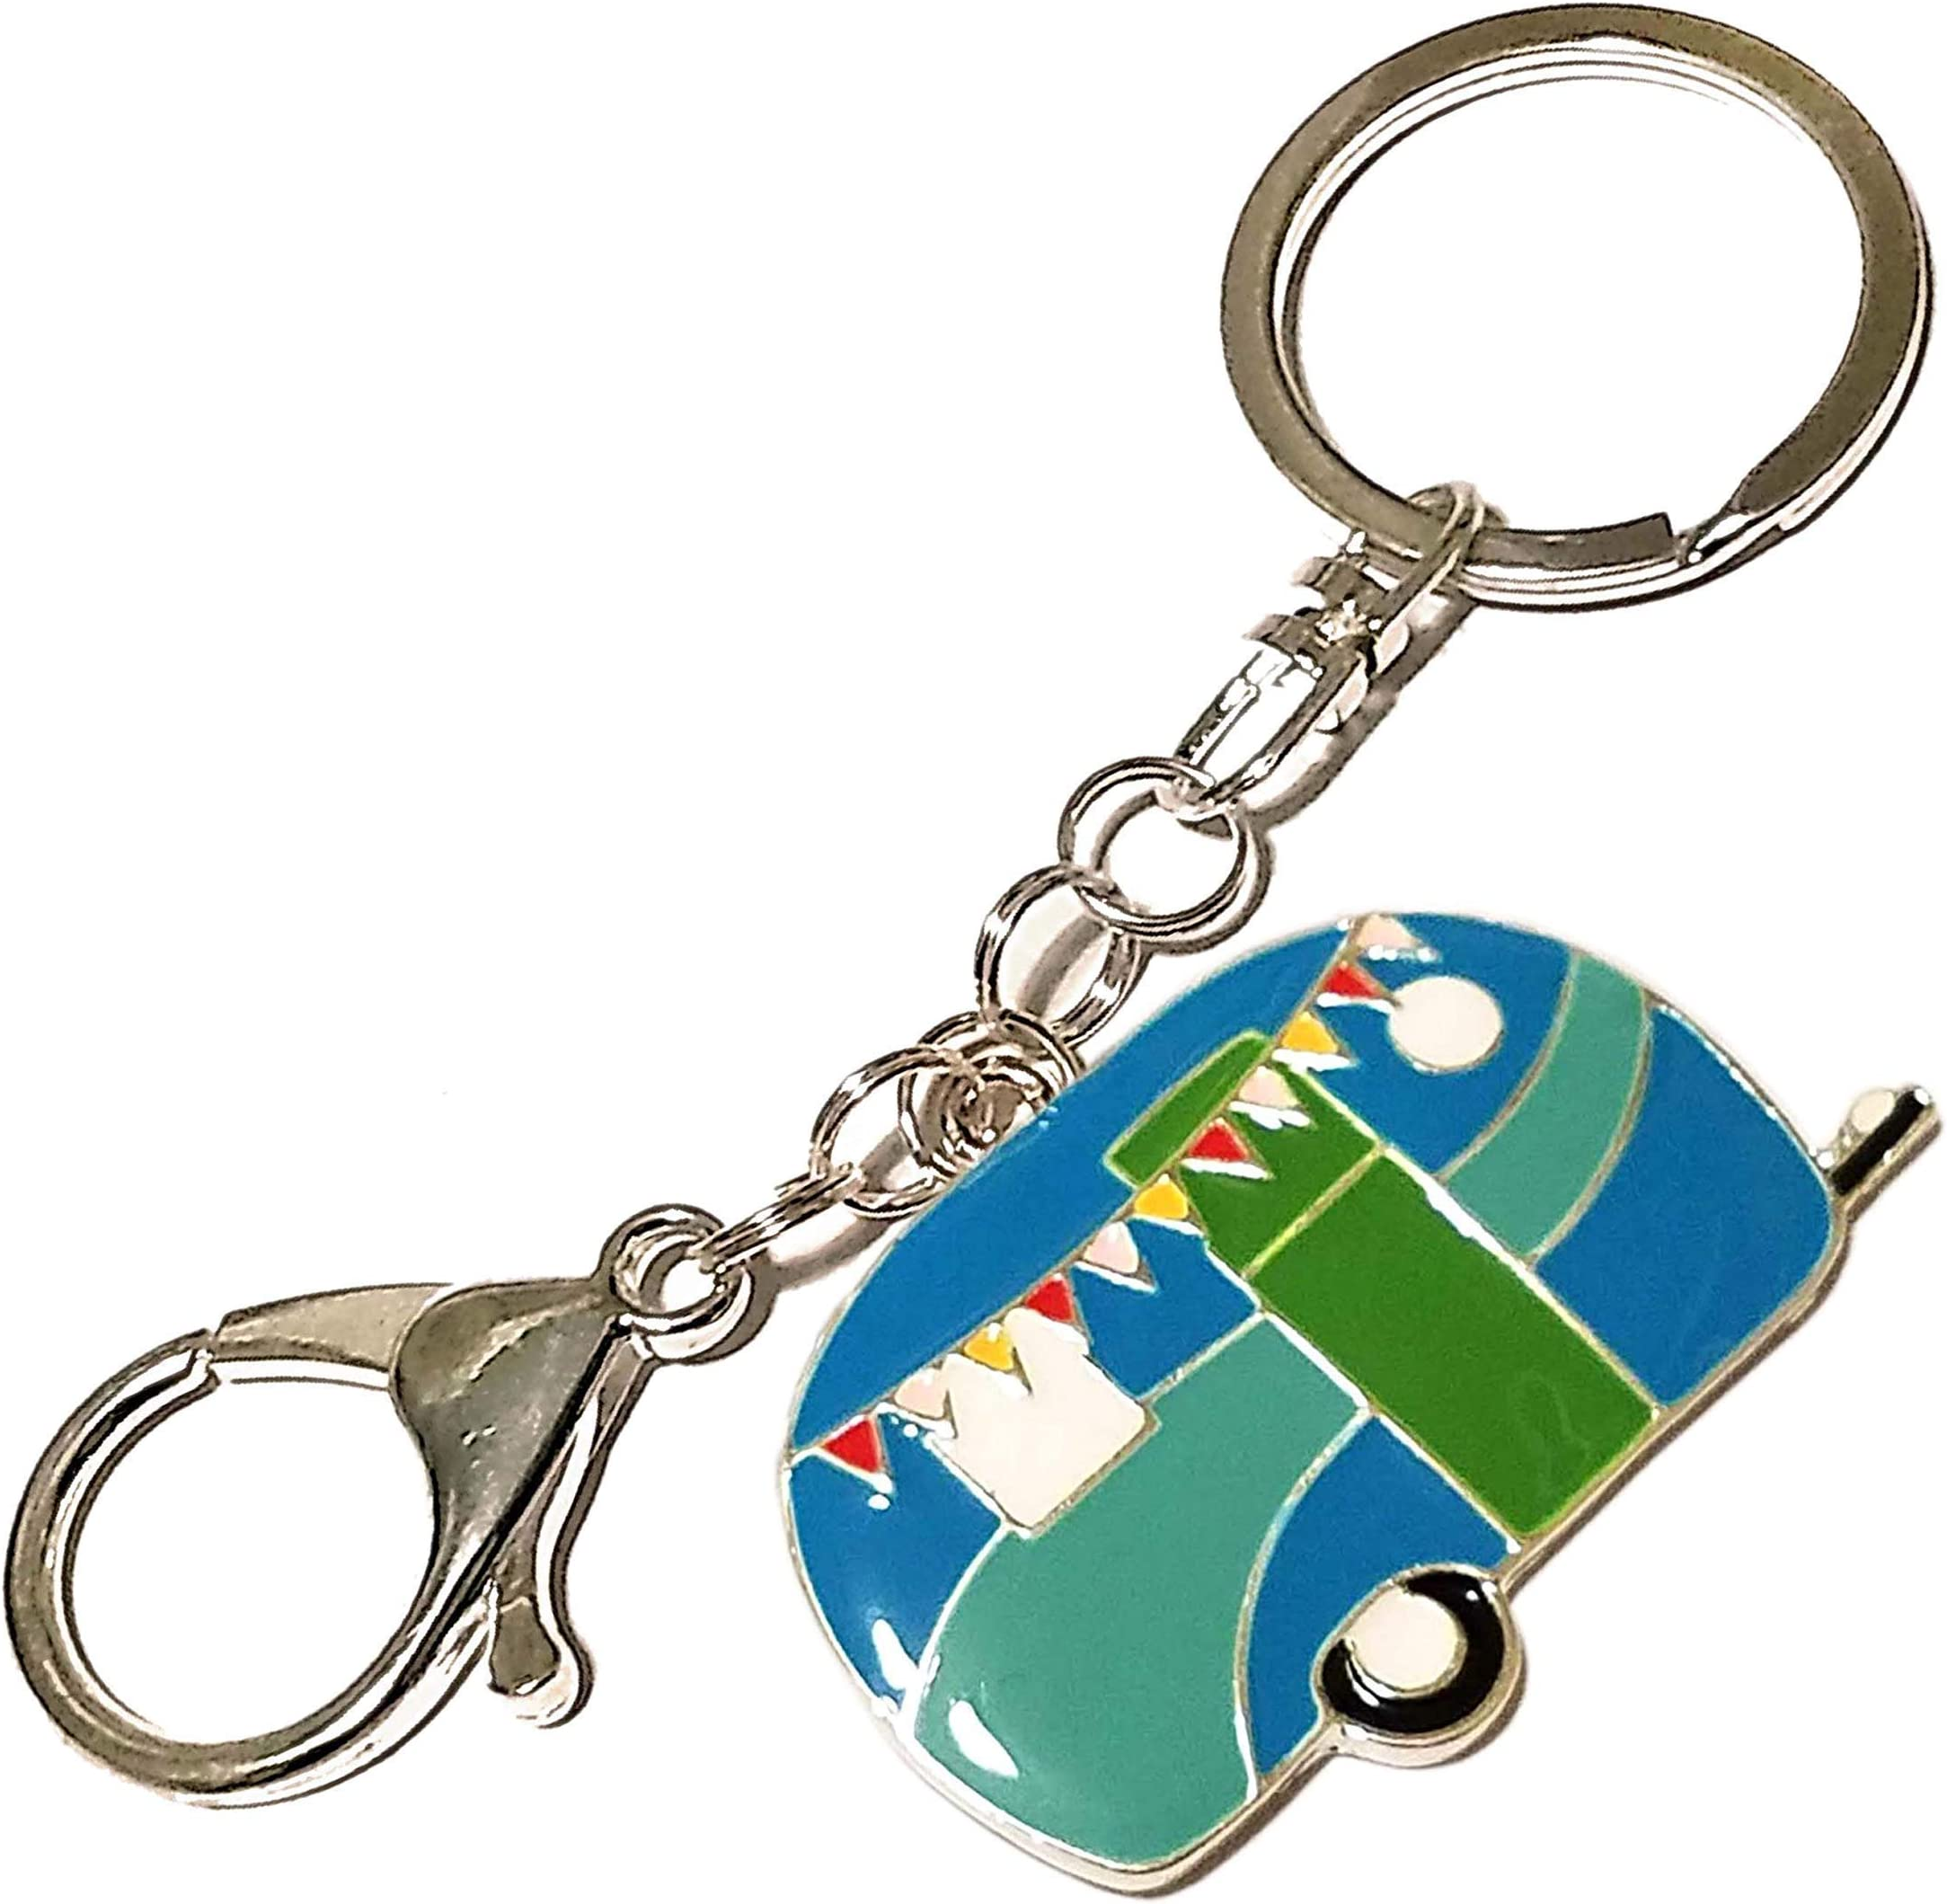 Charms: Camper; Glass of Red Wine; Stainless Steel Engraved Word Charm Happy Camper Jewelry Kilt Safety Pin Purse Backpack Charm Bag